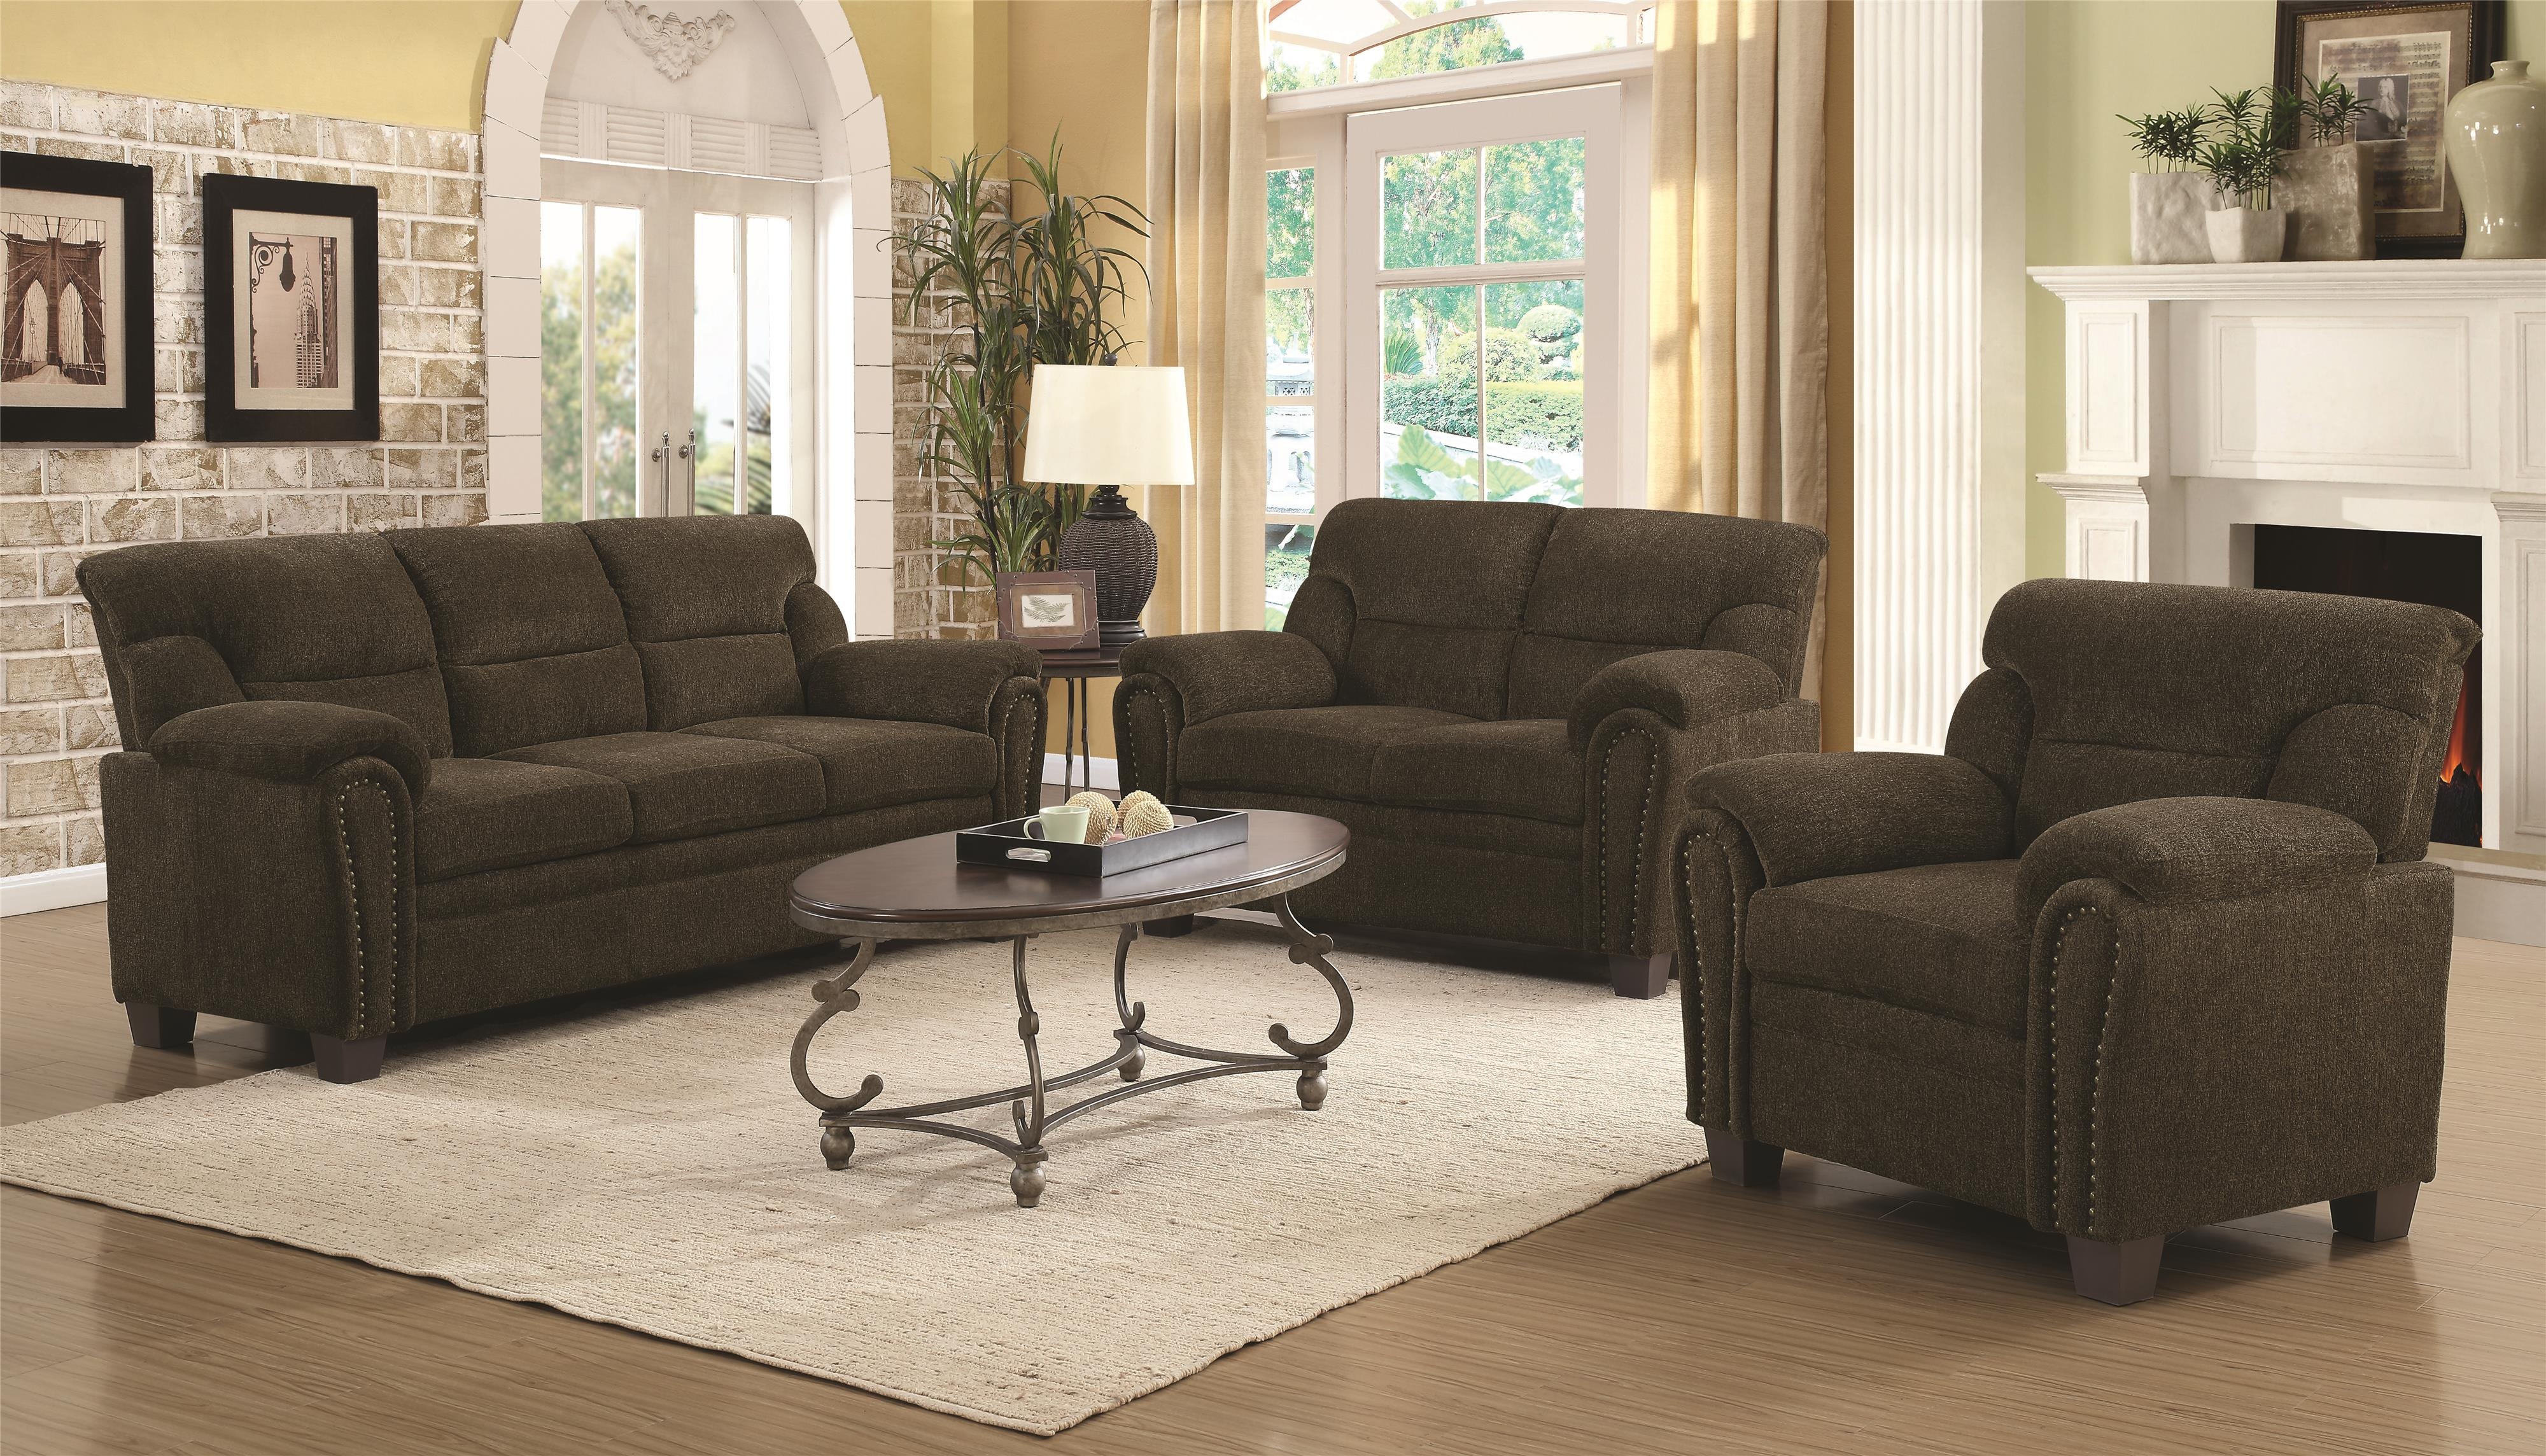 Coaster Clemintine by Coaster Stationary Living Room Group - Item Number: 50657-Group-1-Brown